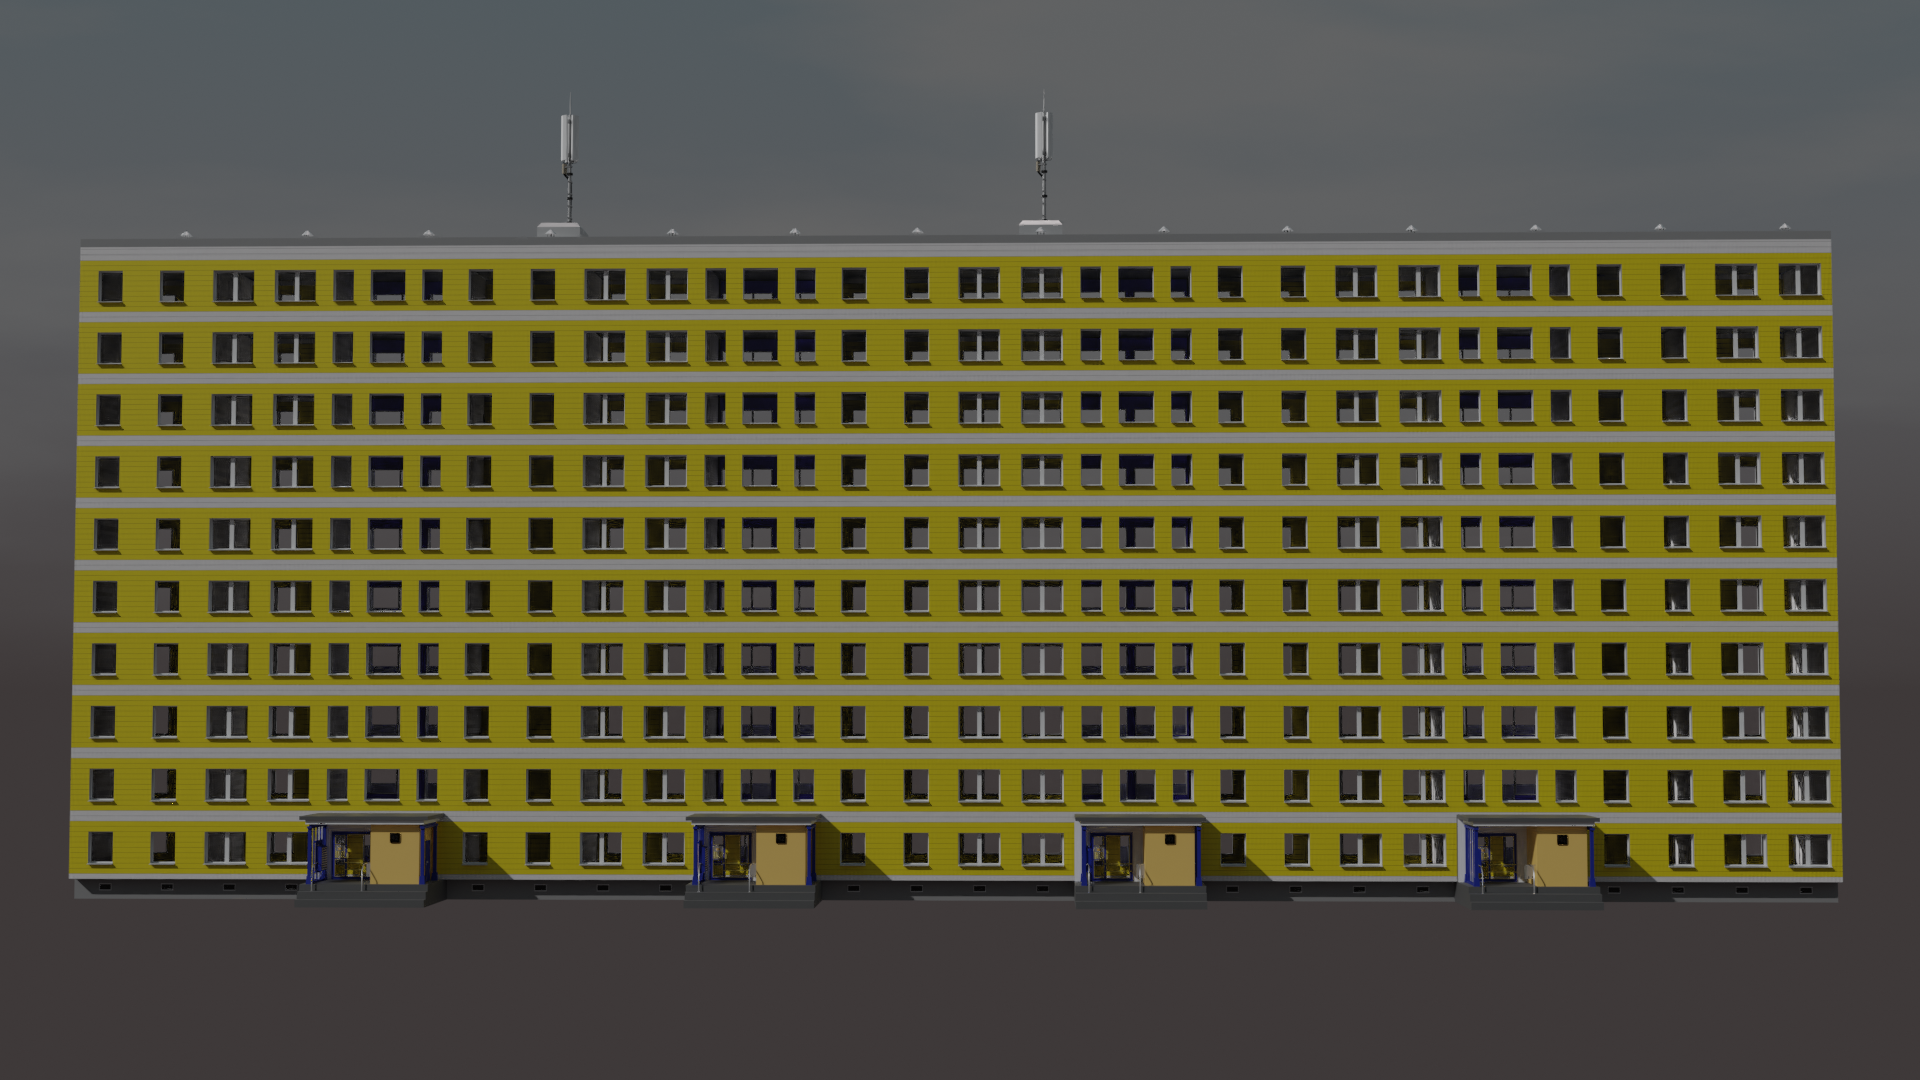 Modular Instustrialized Apartment Block (Low Poly) preview image 4